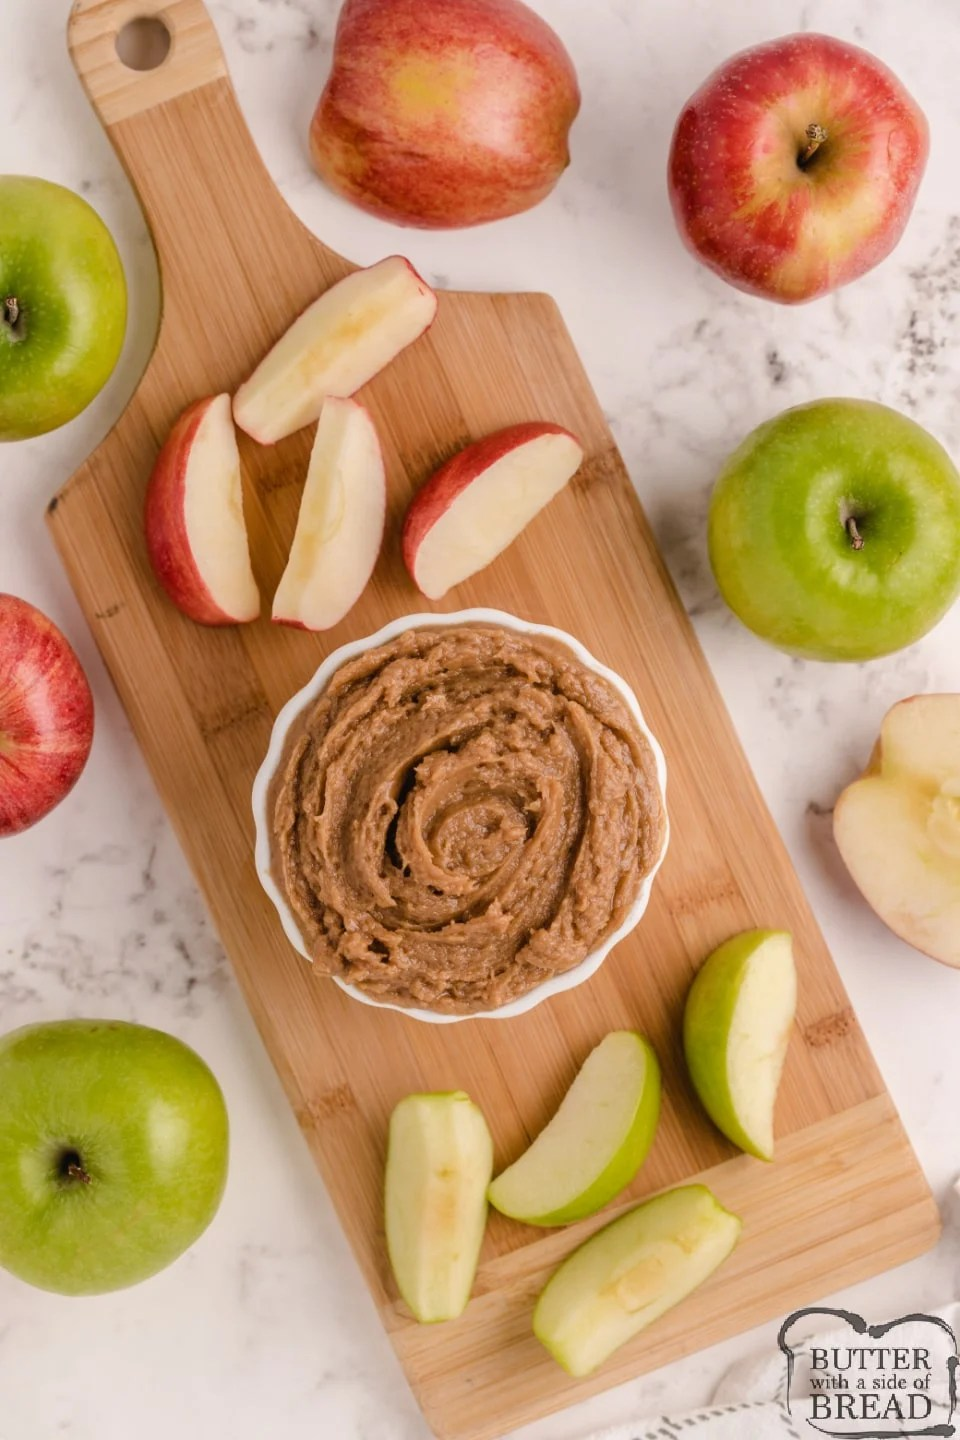 Apple dip made with peanut butter and cream cheese